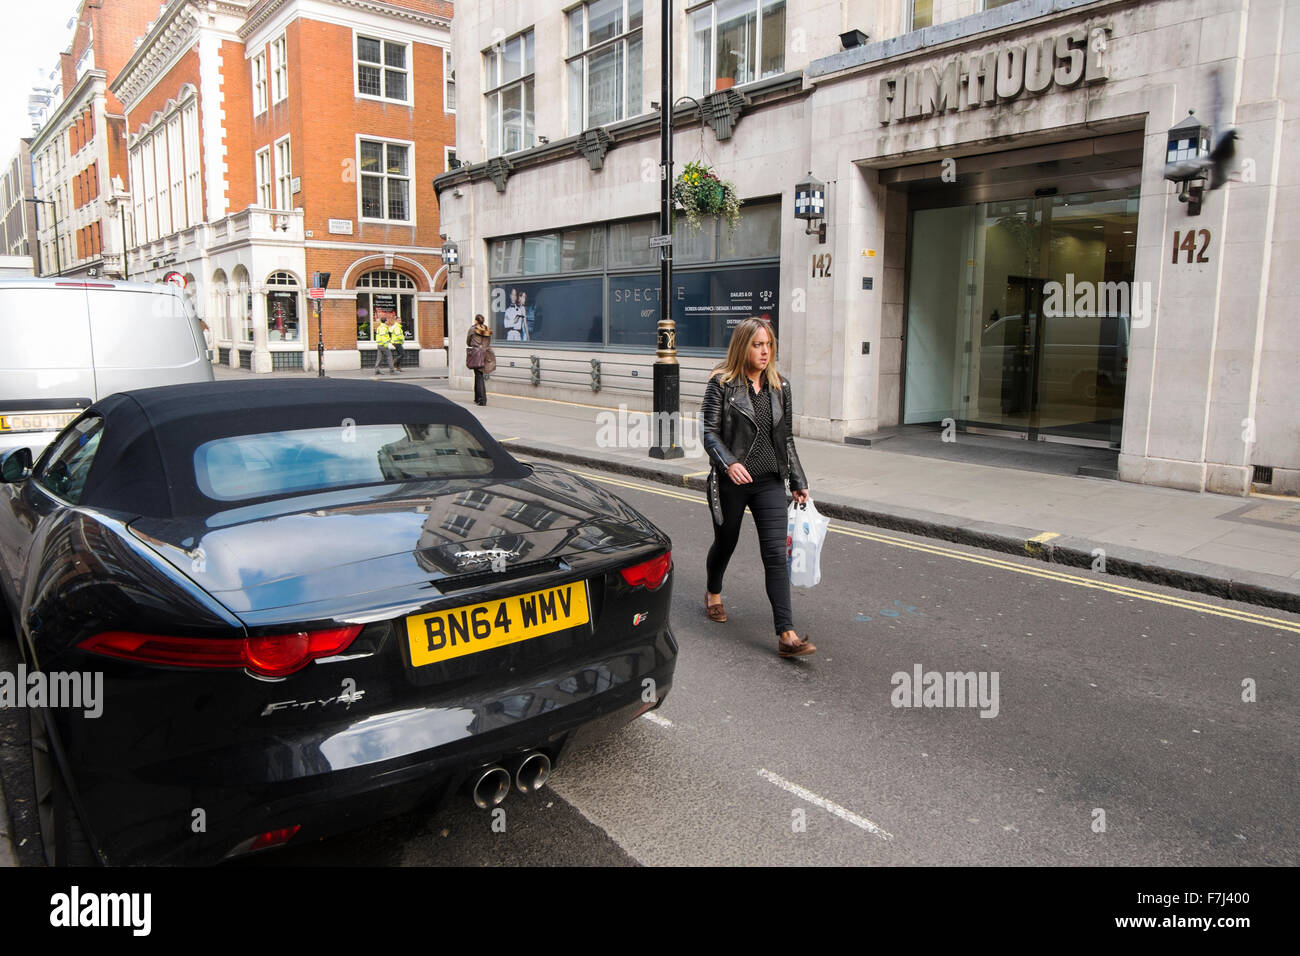 Jaguar F-Type car parked opposite Film House with poster for Spectre in the window in Wardour Street, Soho, London, - Stock Image